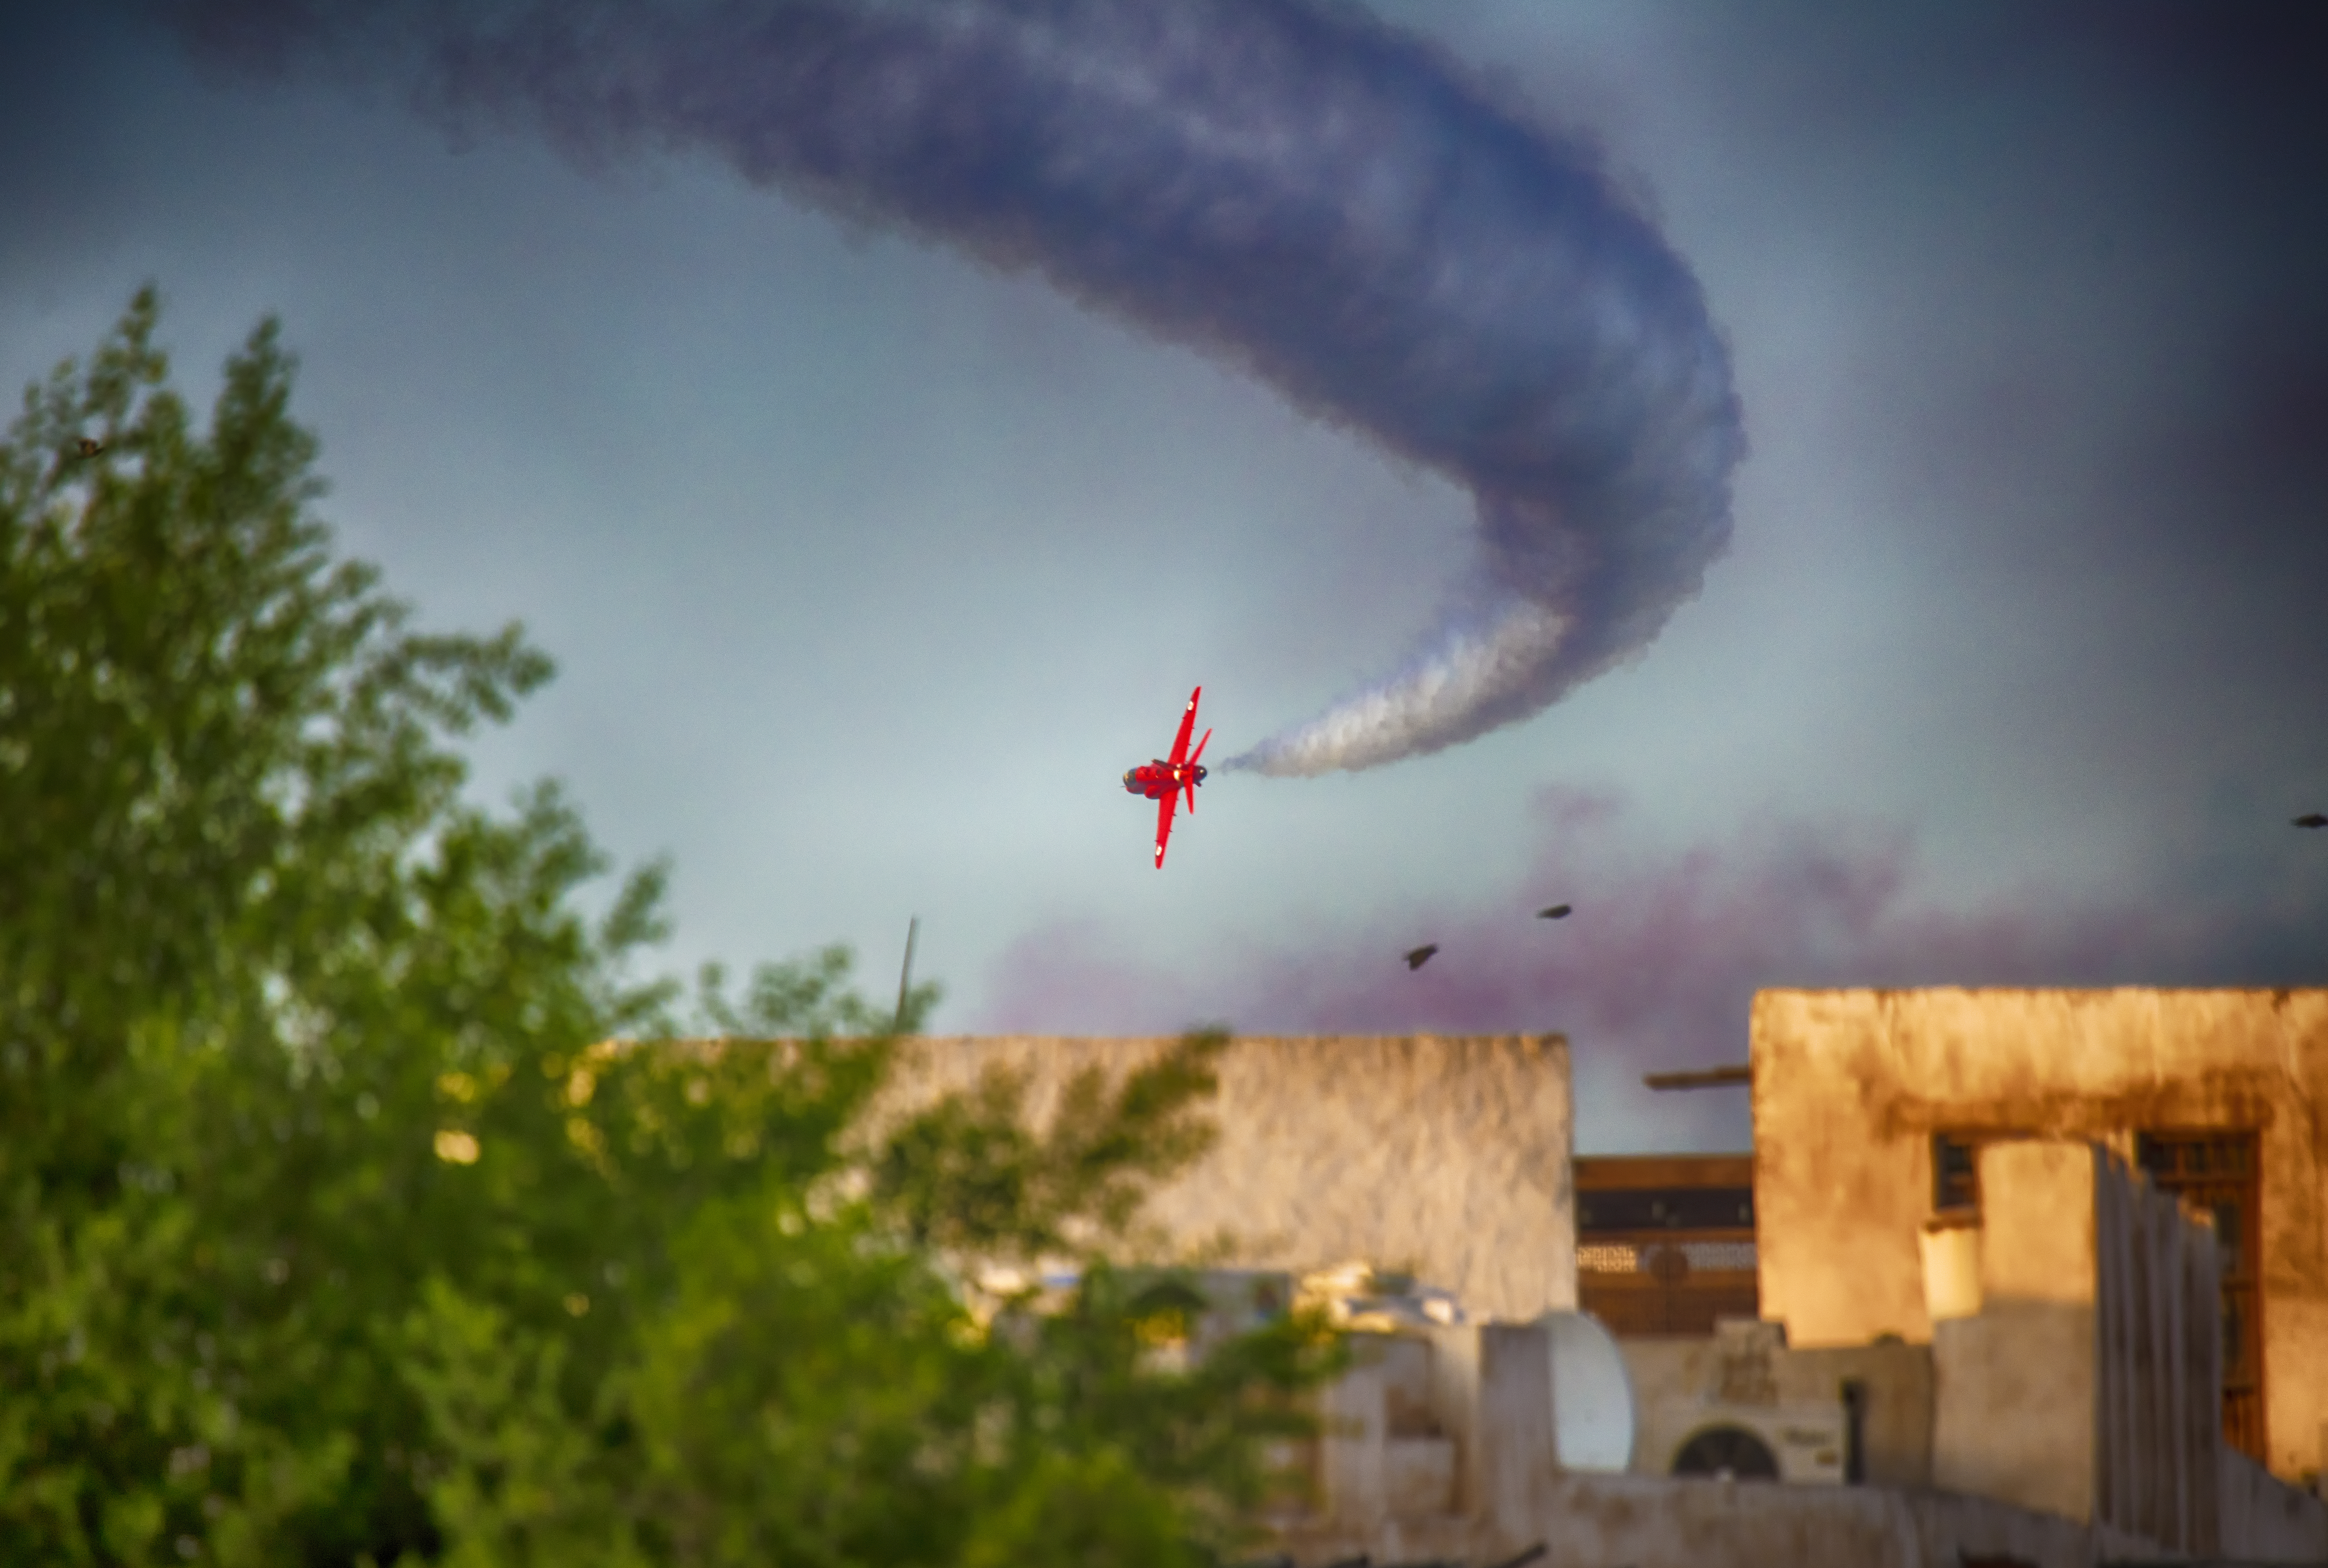 Red plane in the sky with contrail.jpg